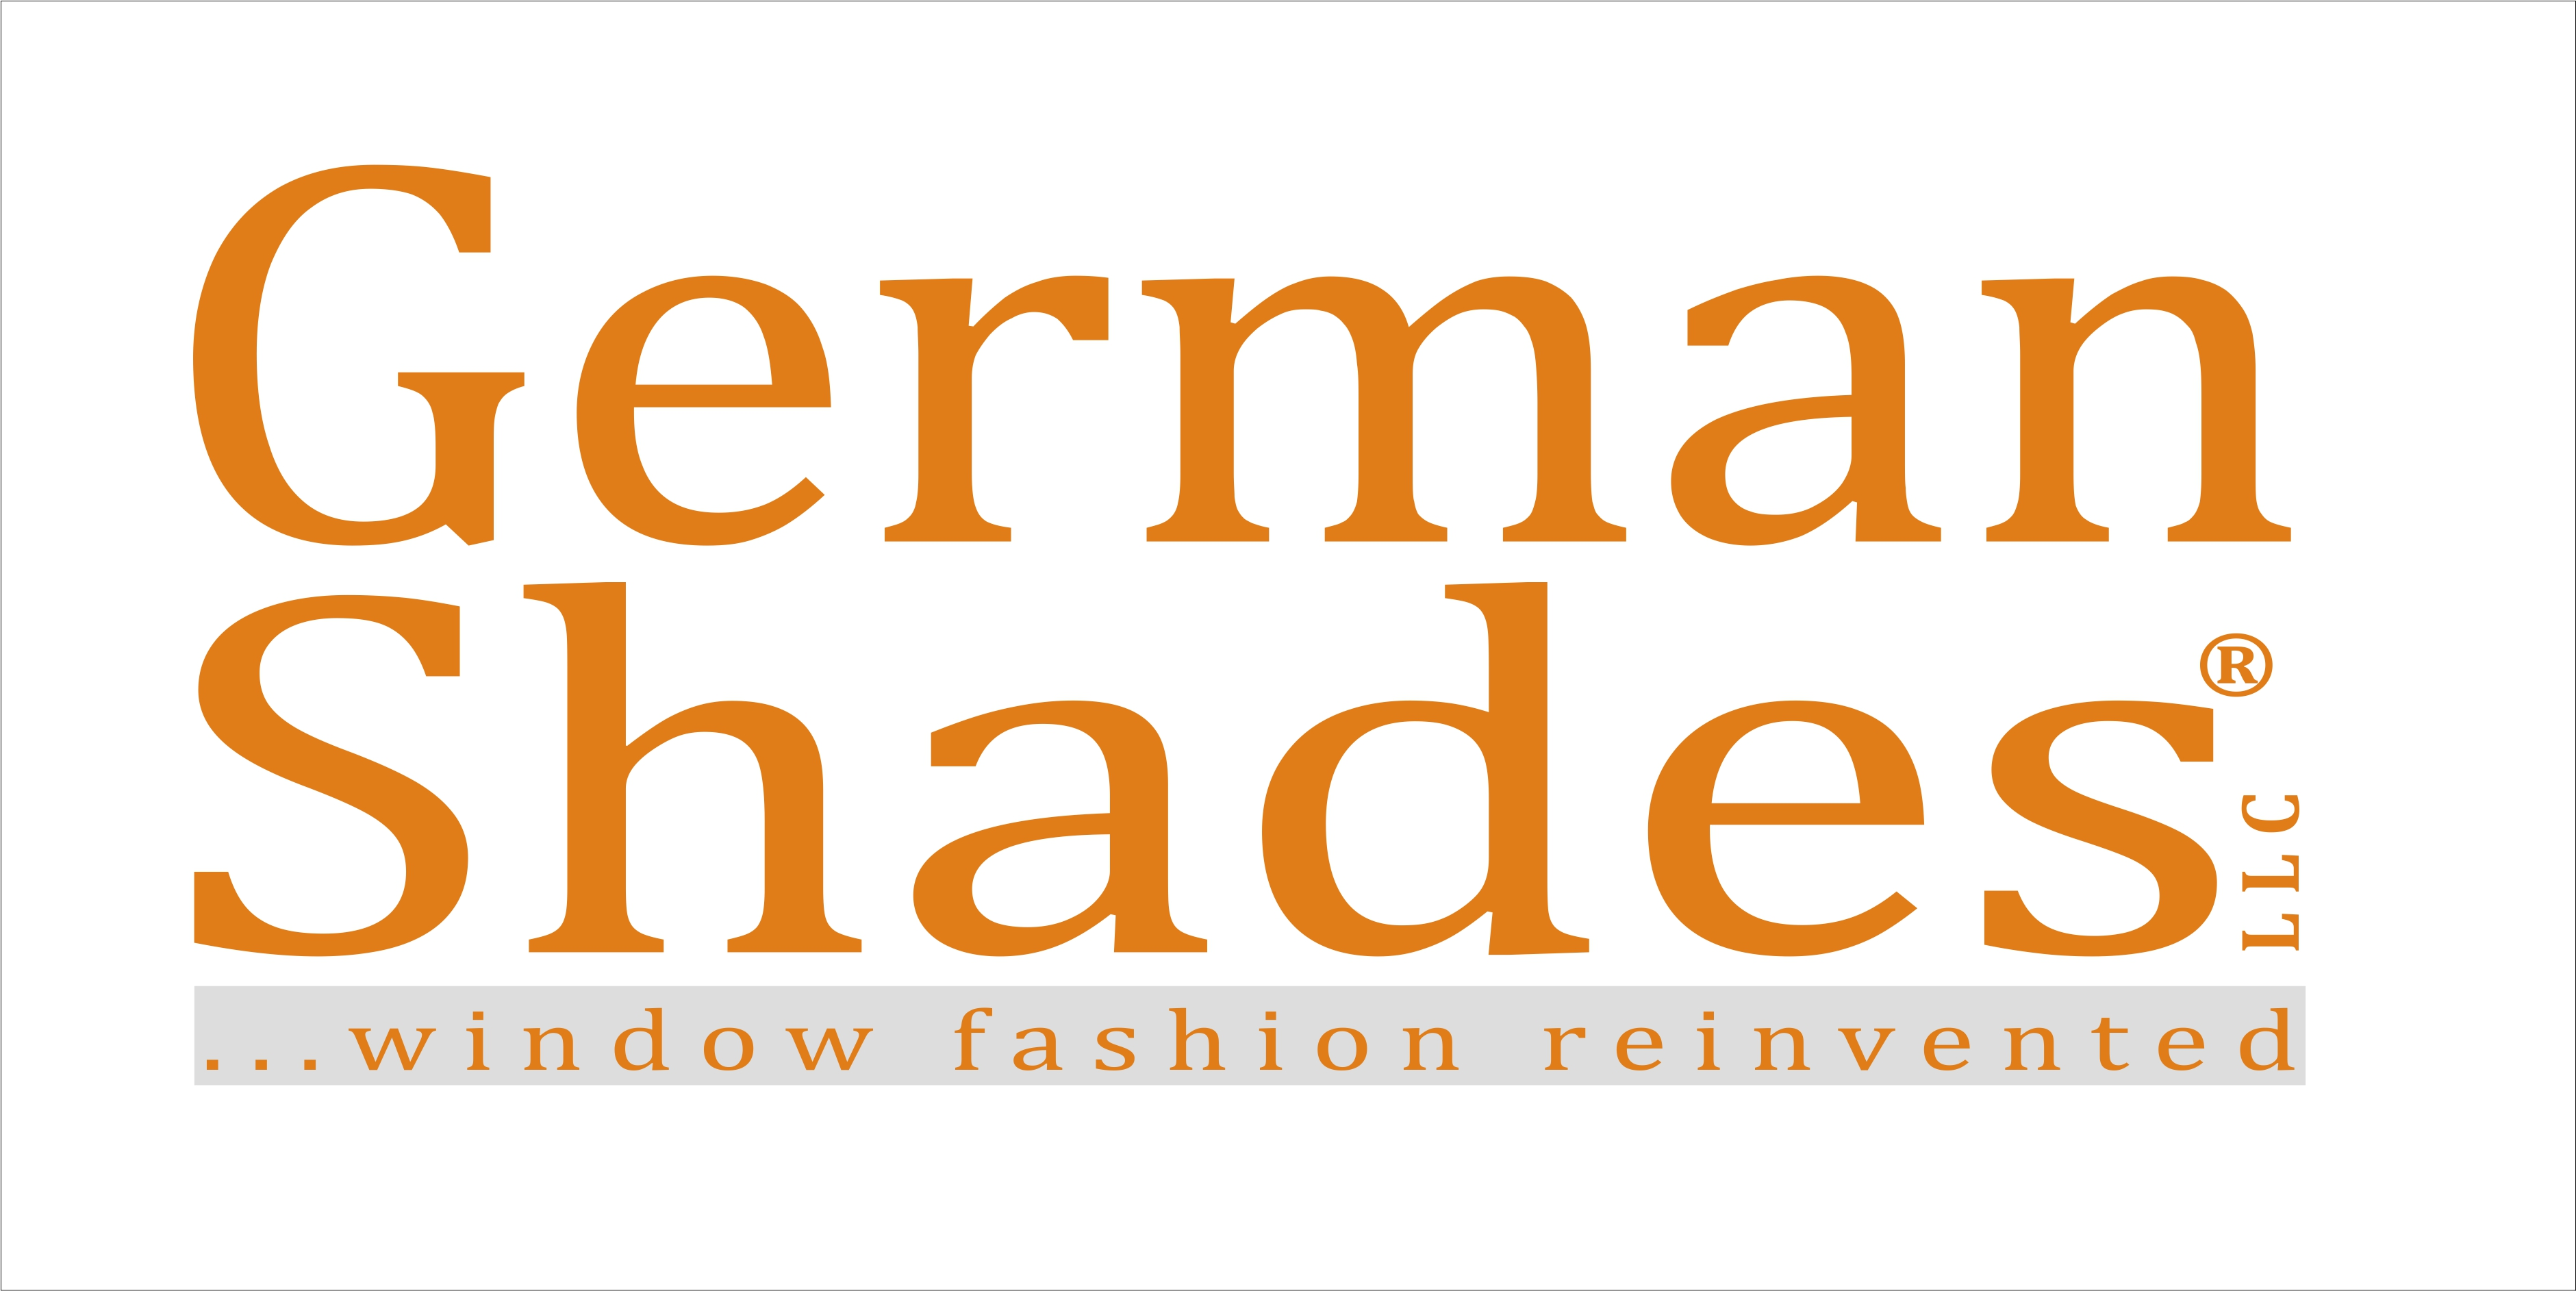 GermanShades is offering pleated blinds and shades from Germany in North America with over 40 years of combined experience